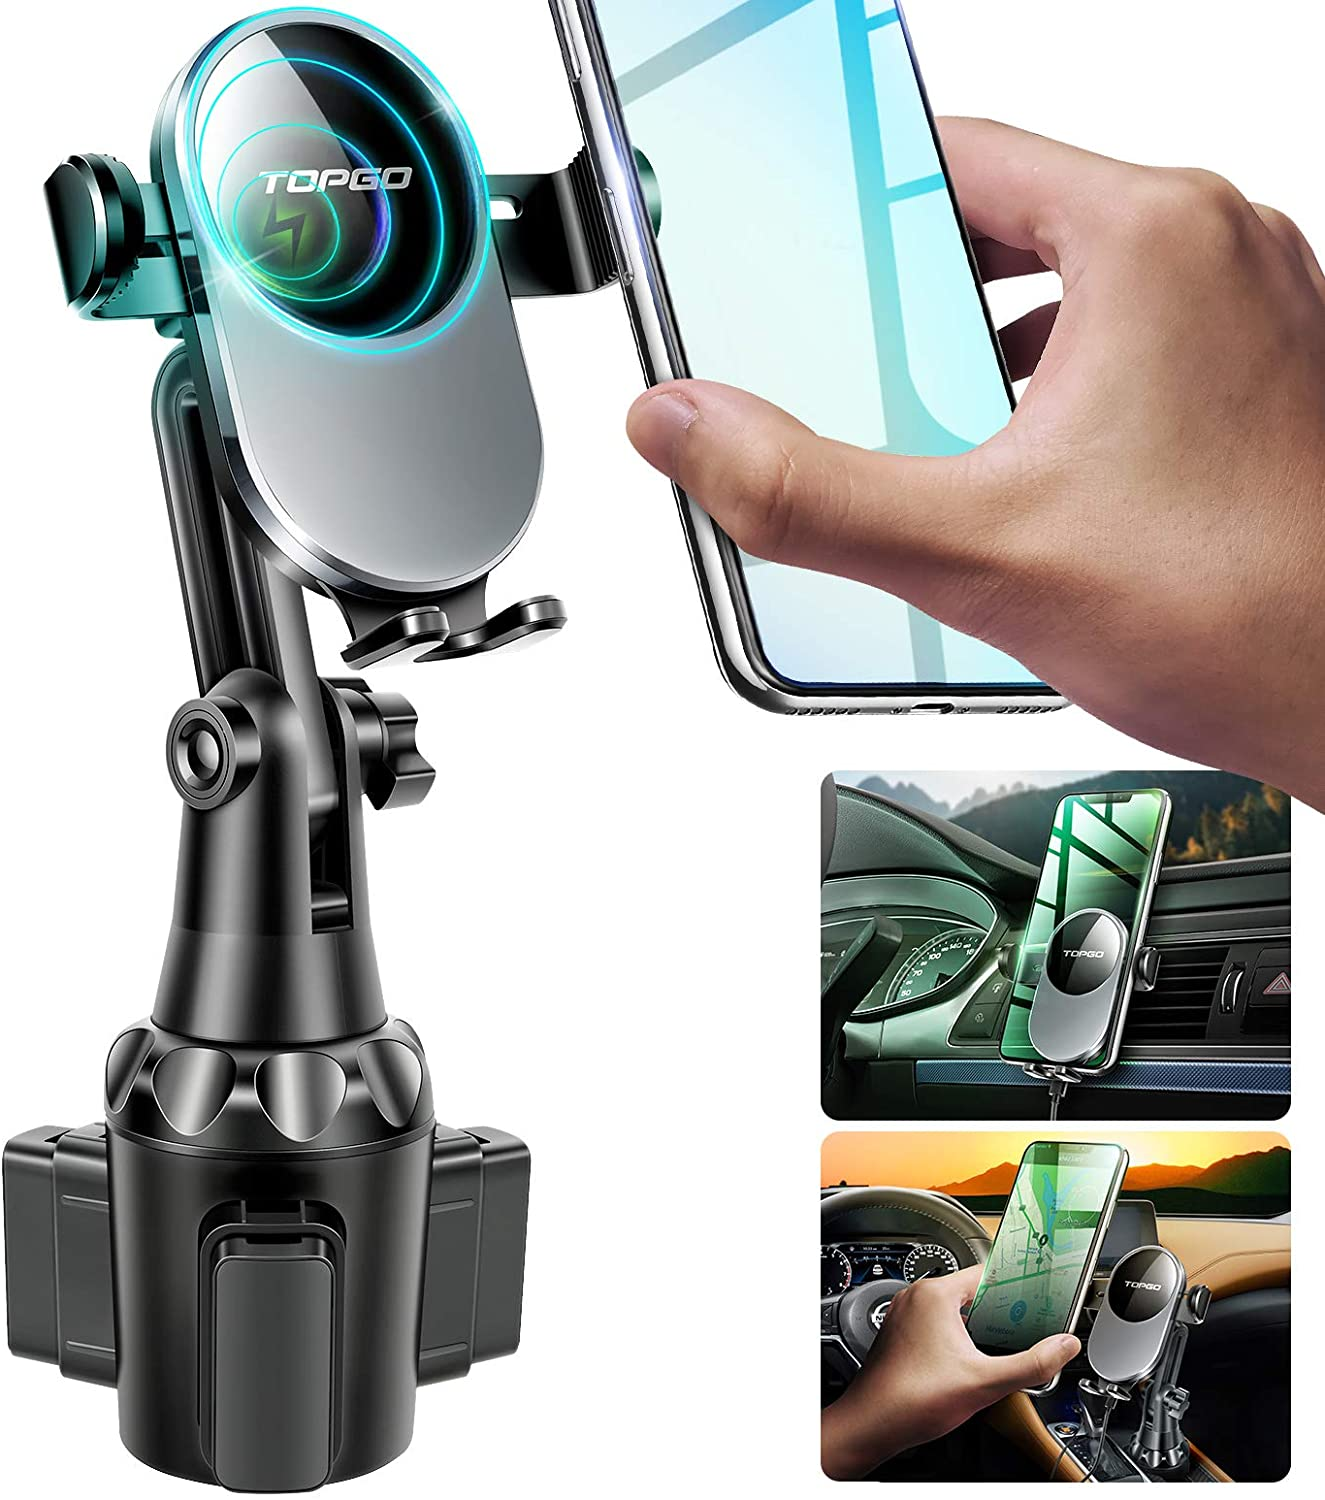 TOPGO Wireless Cup Phone Holder for Toyota Tacoma